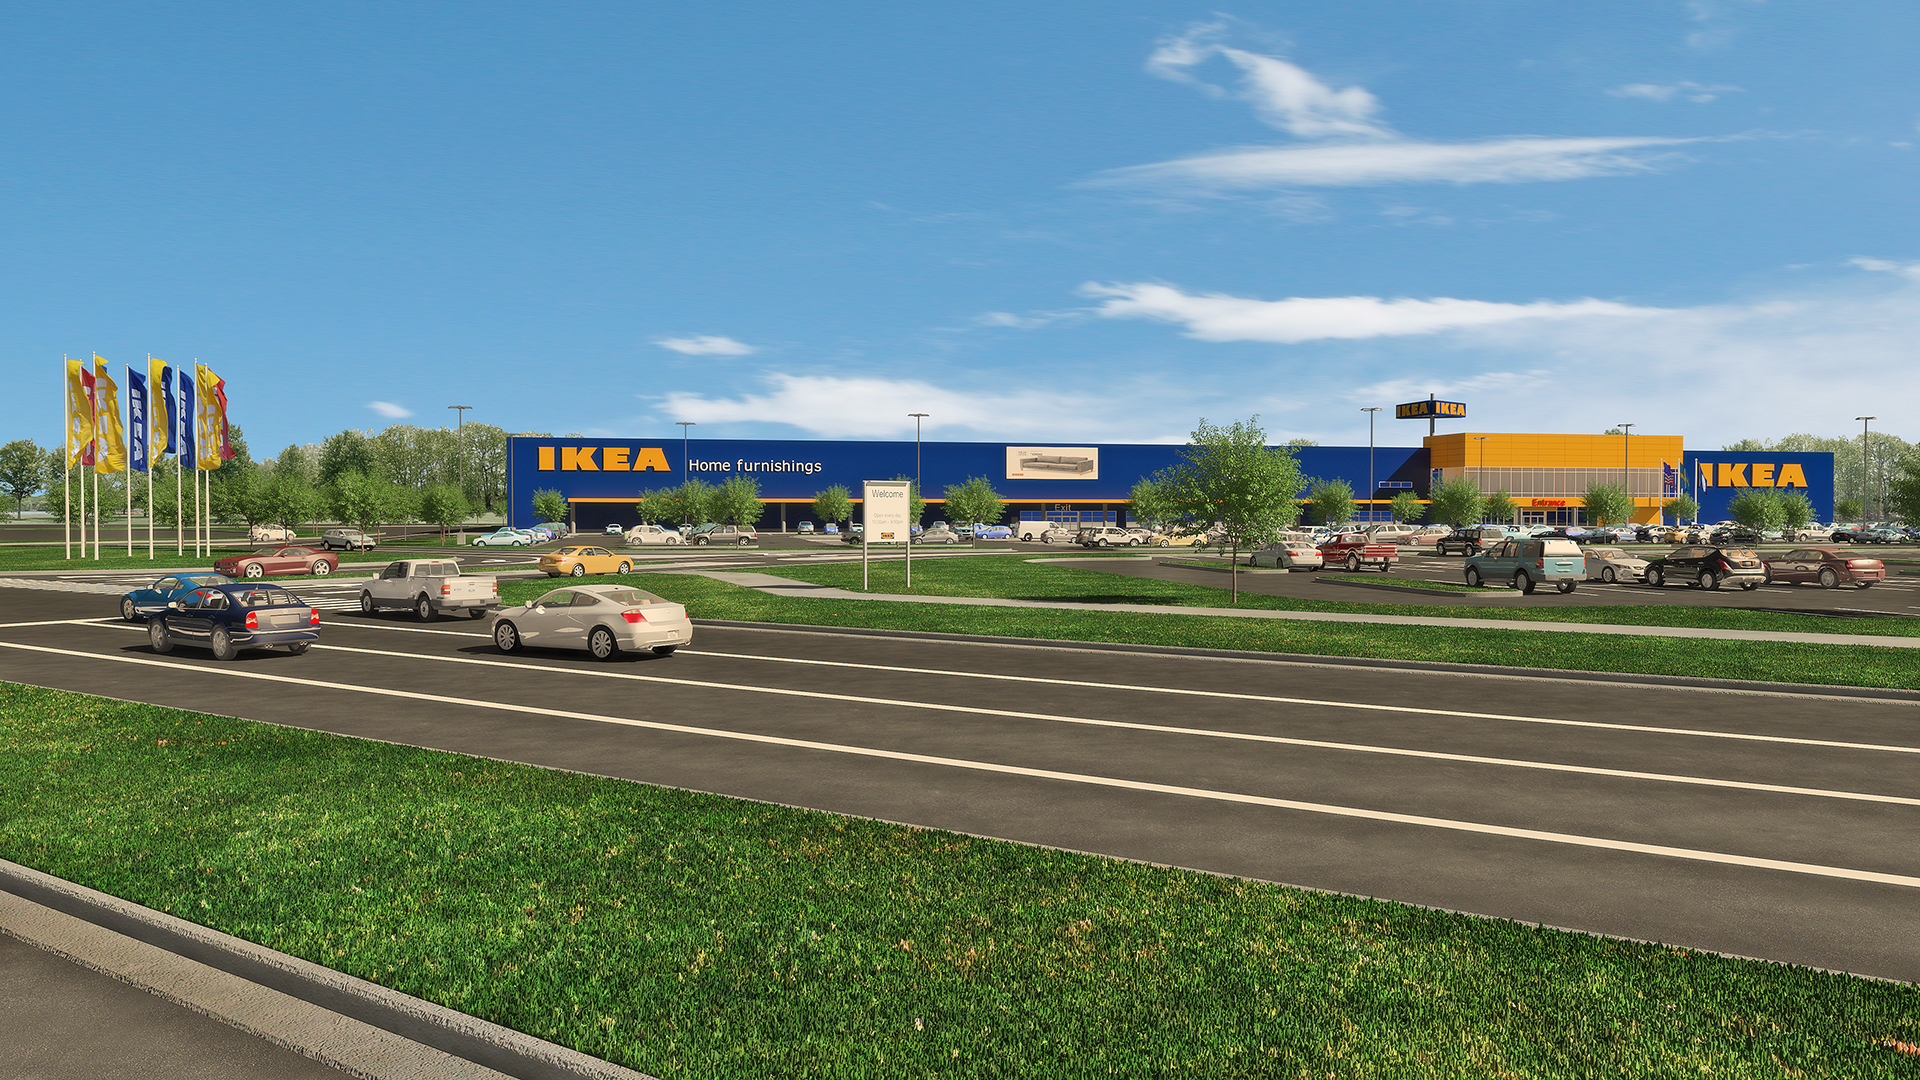 ikea applauds city council of norfolk virginia for its